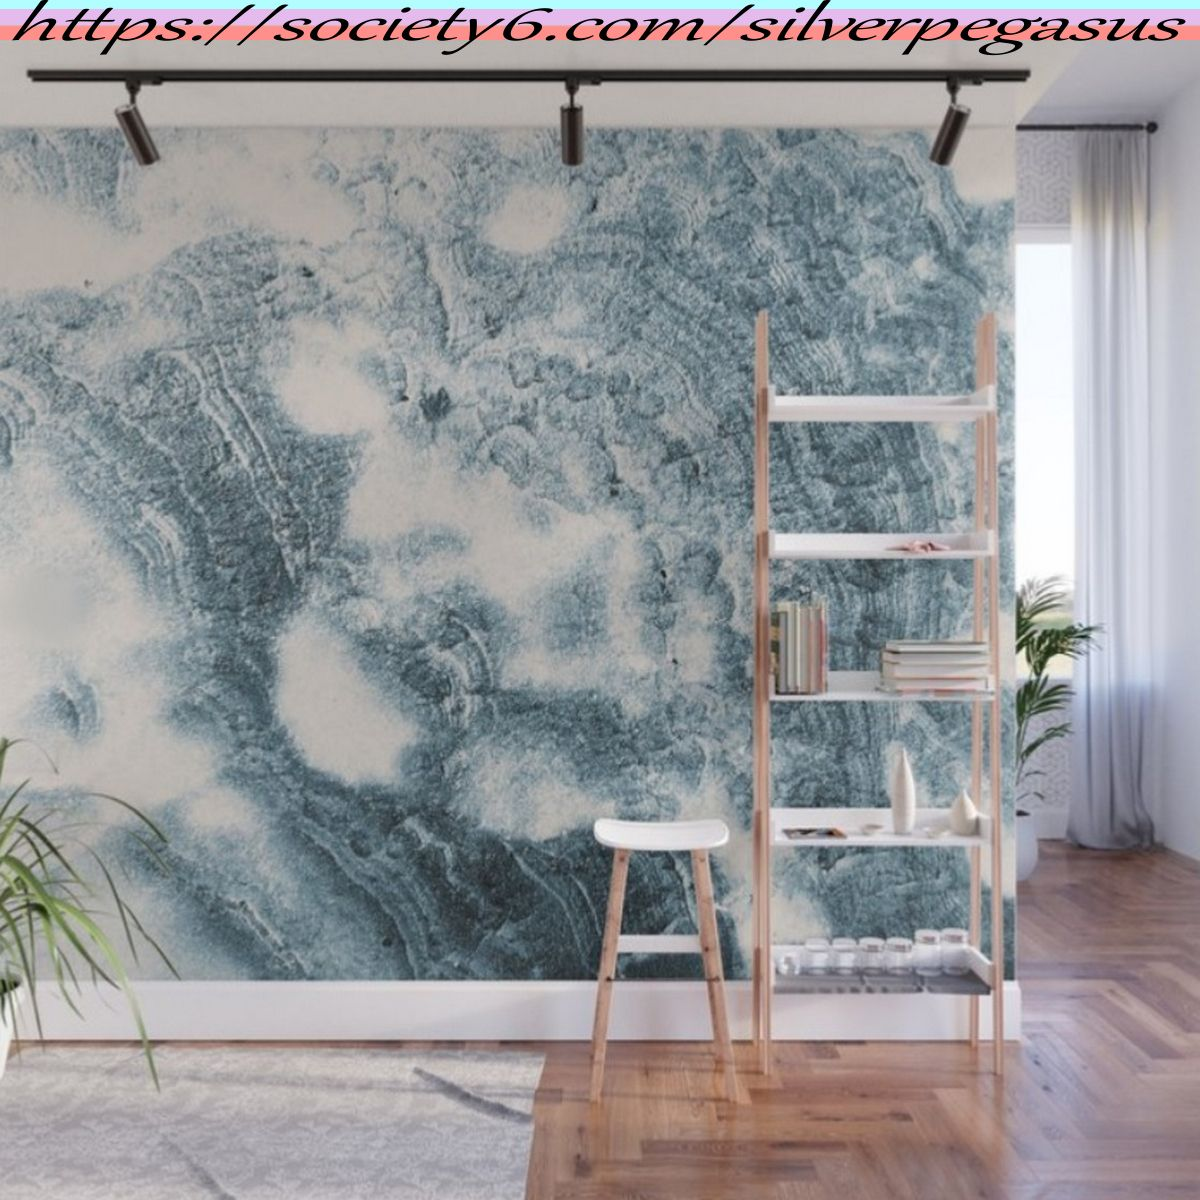 Society6 Com Silverpegasus Marble Flow Moody Blue Wall Mural By Silverpegasus In 2020 Marble Design Texture Wall Murals Large Scale Wall Art